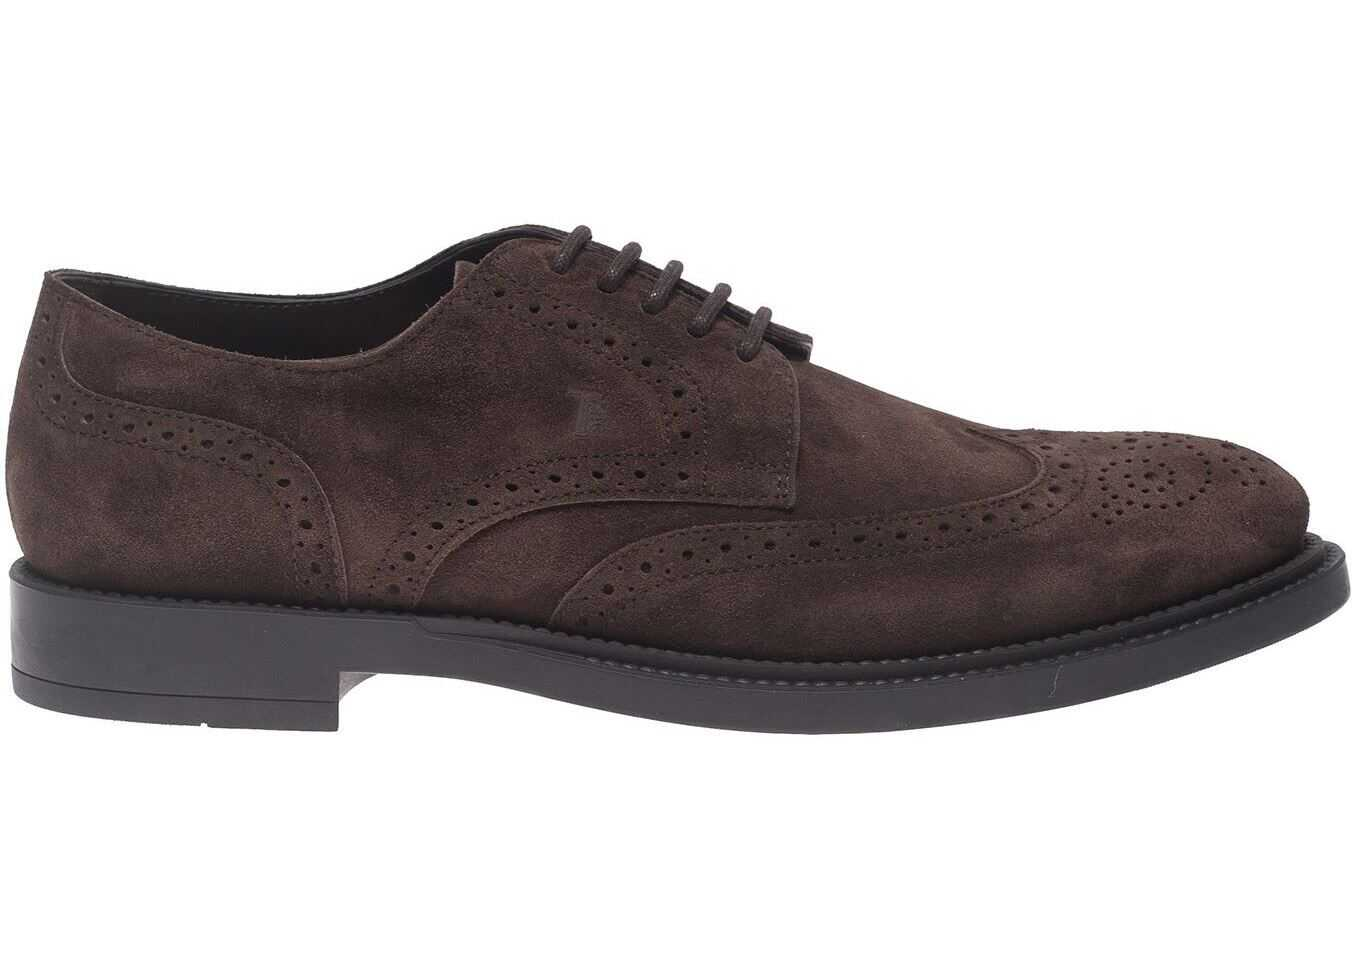 TOD'S Derby Shoes In Dark Brown Suede XXM62C00C10RE0S800 Brown imagine b-mall.ro